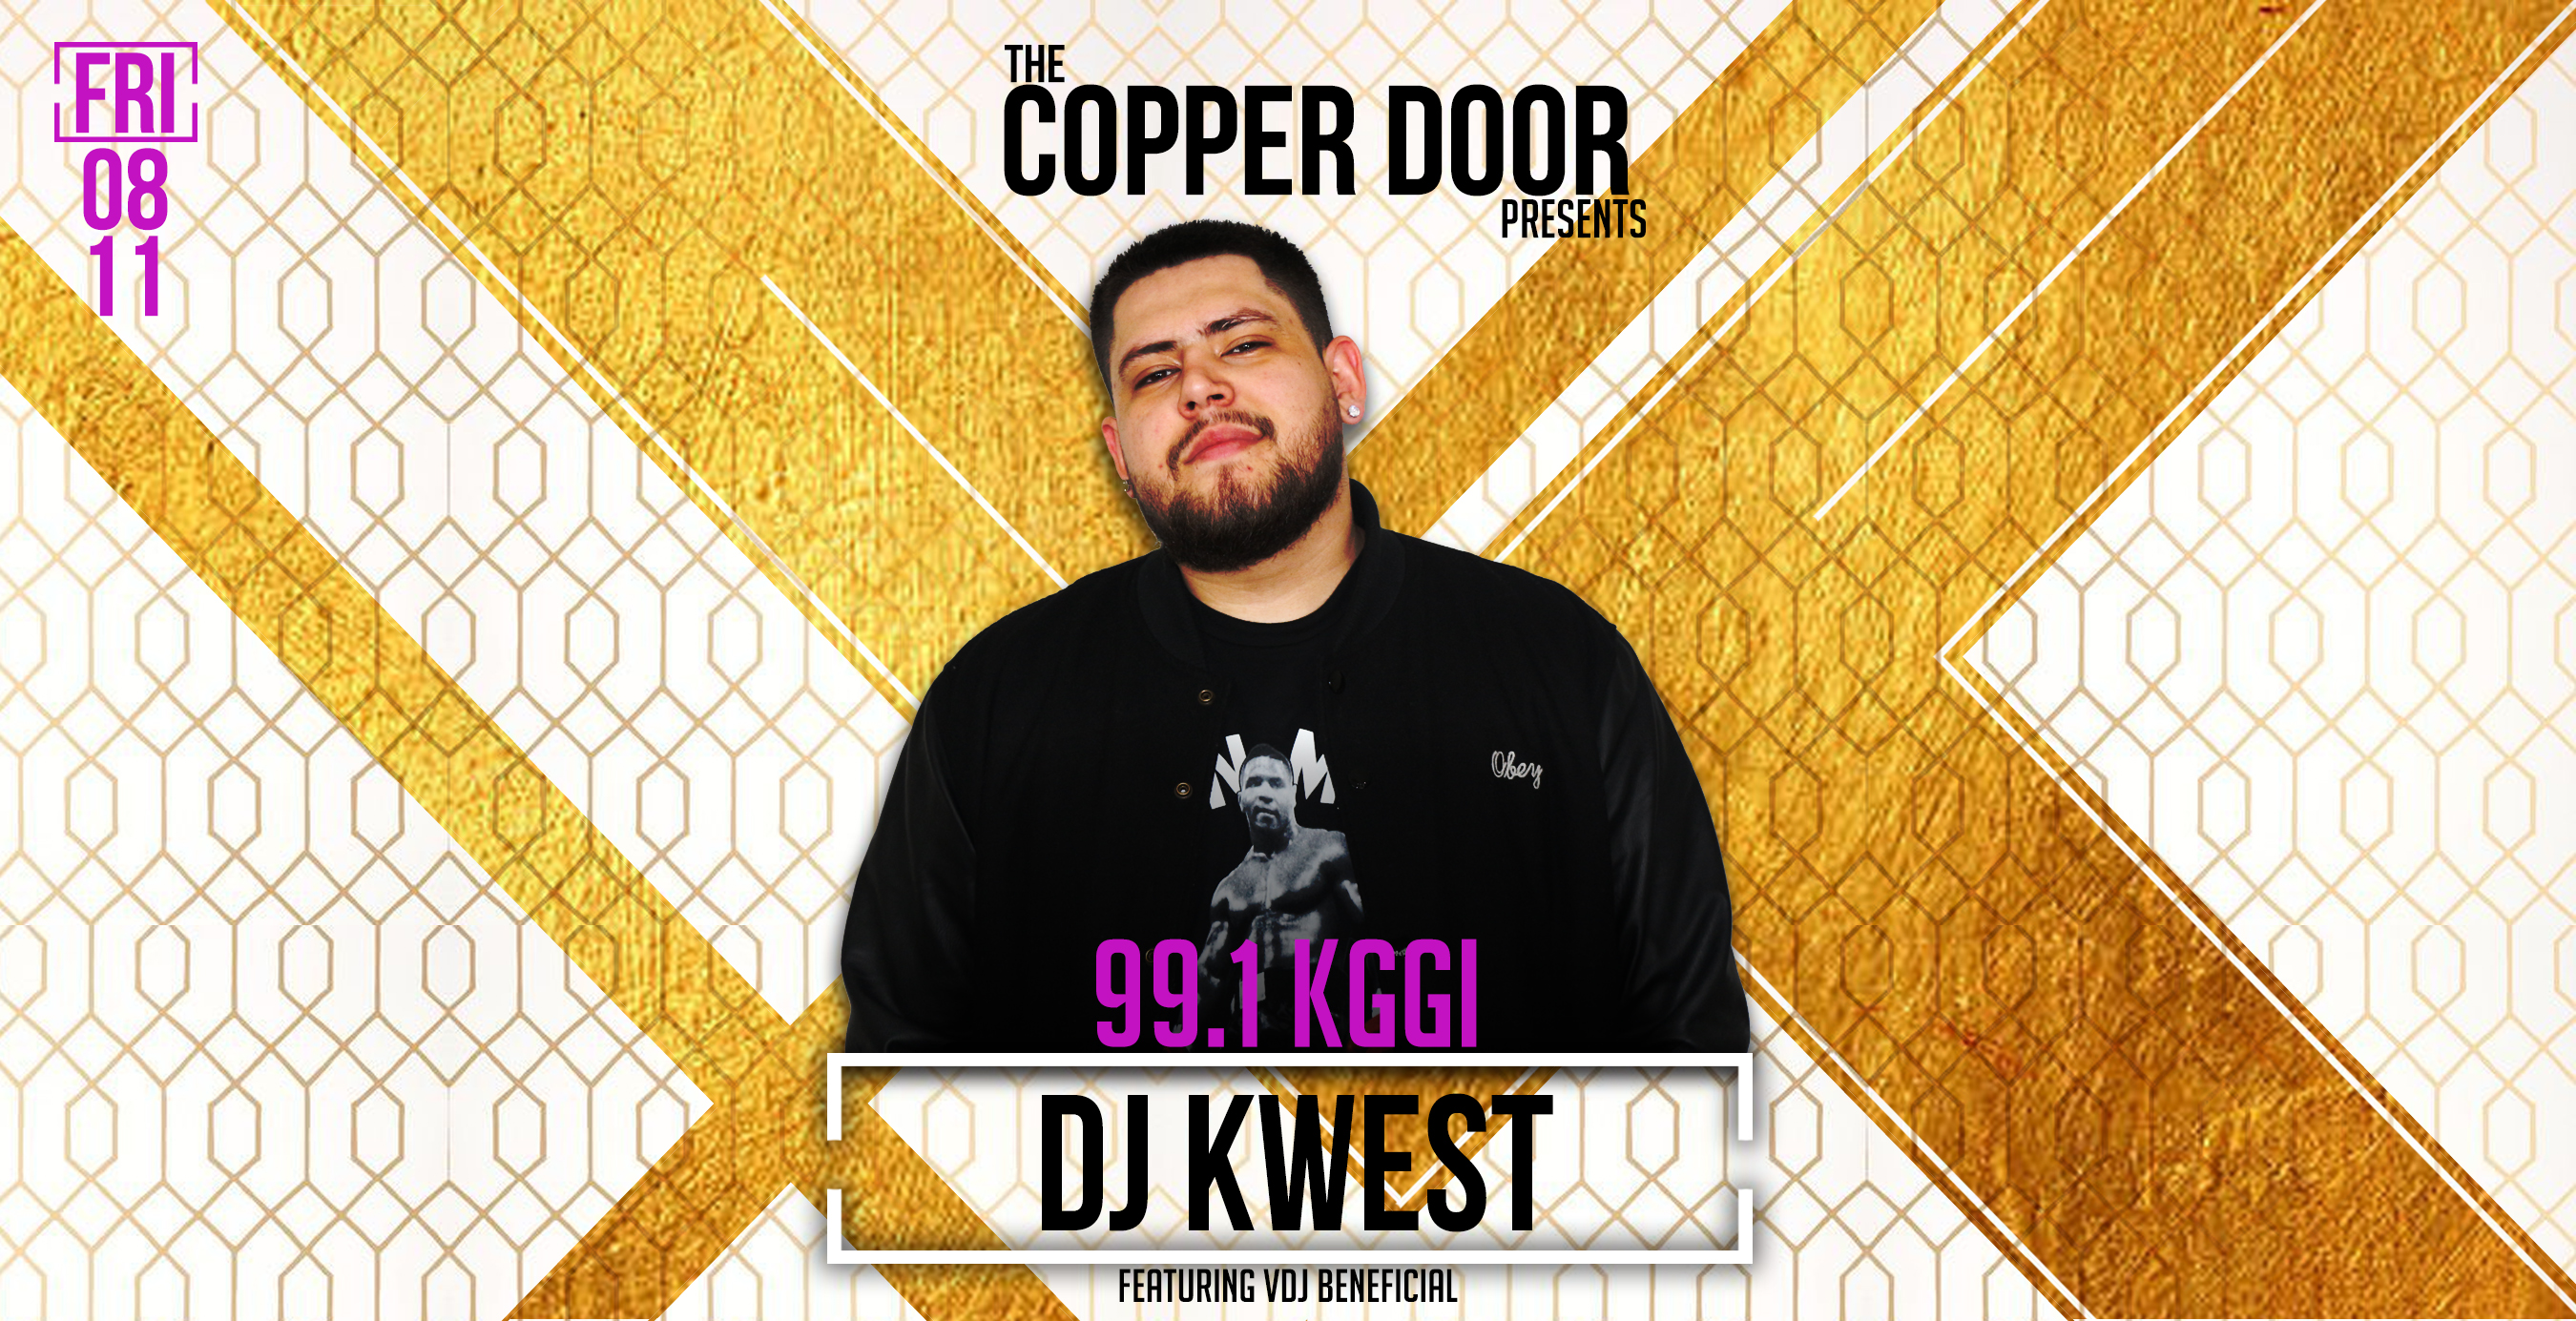 Friday Night Party With 991 KGGI DJ Kwest And Beneficial